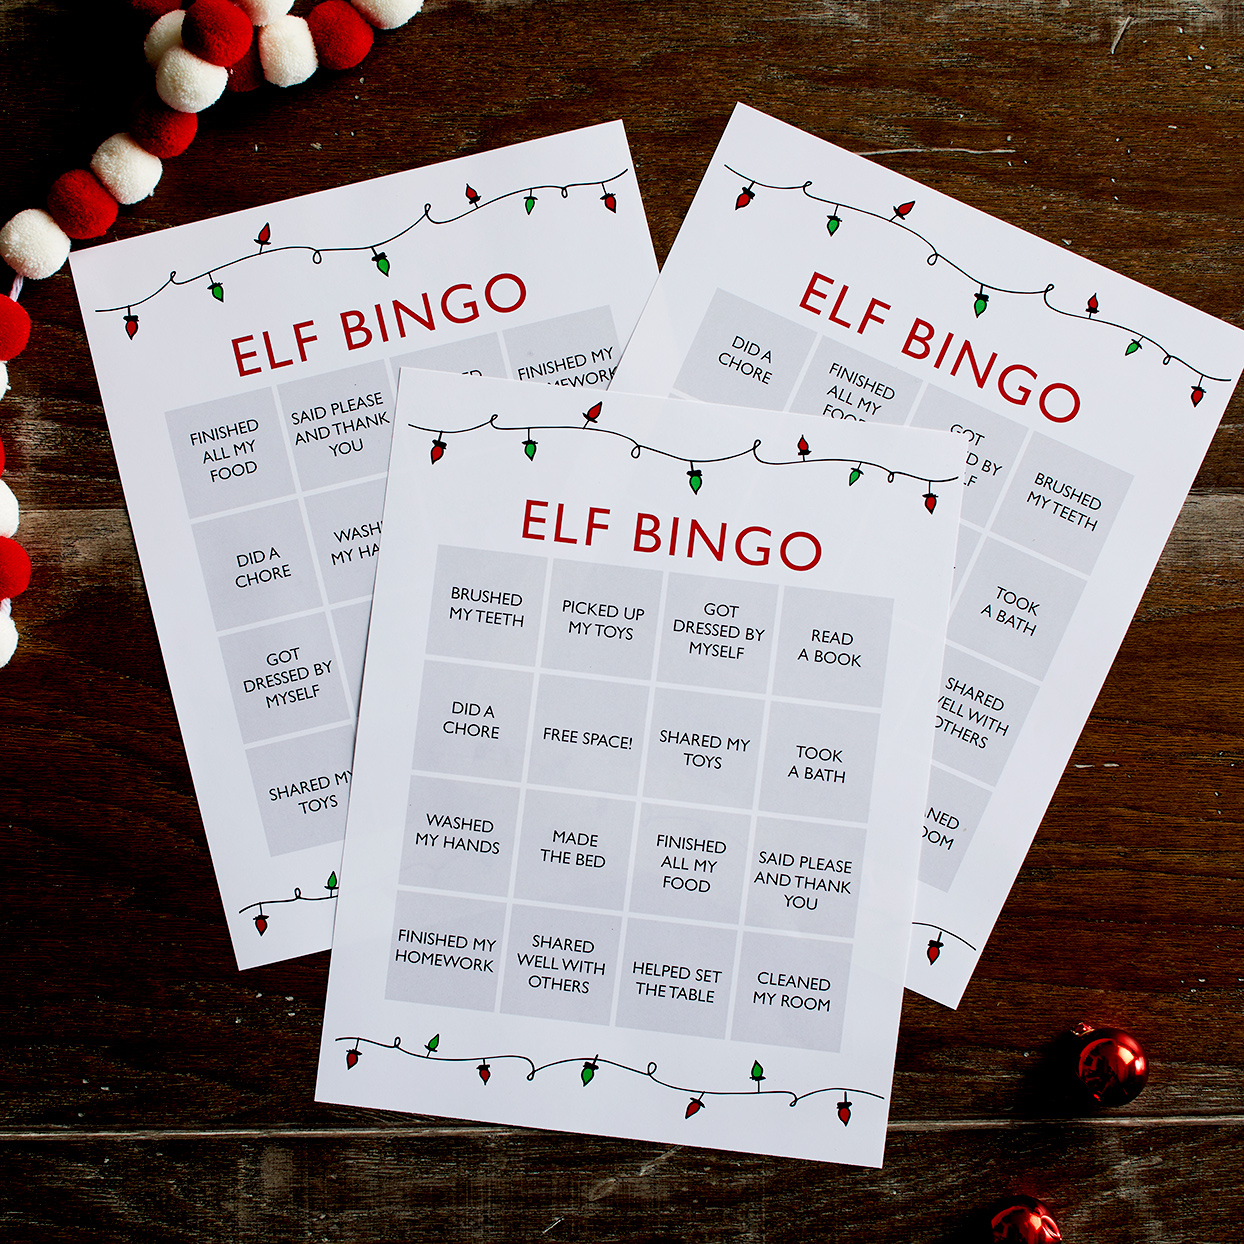 Three Elf Bingo cards